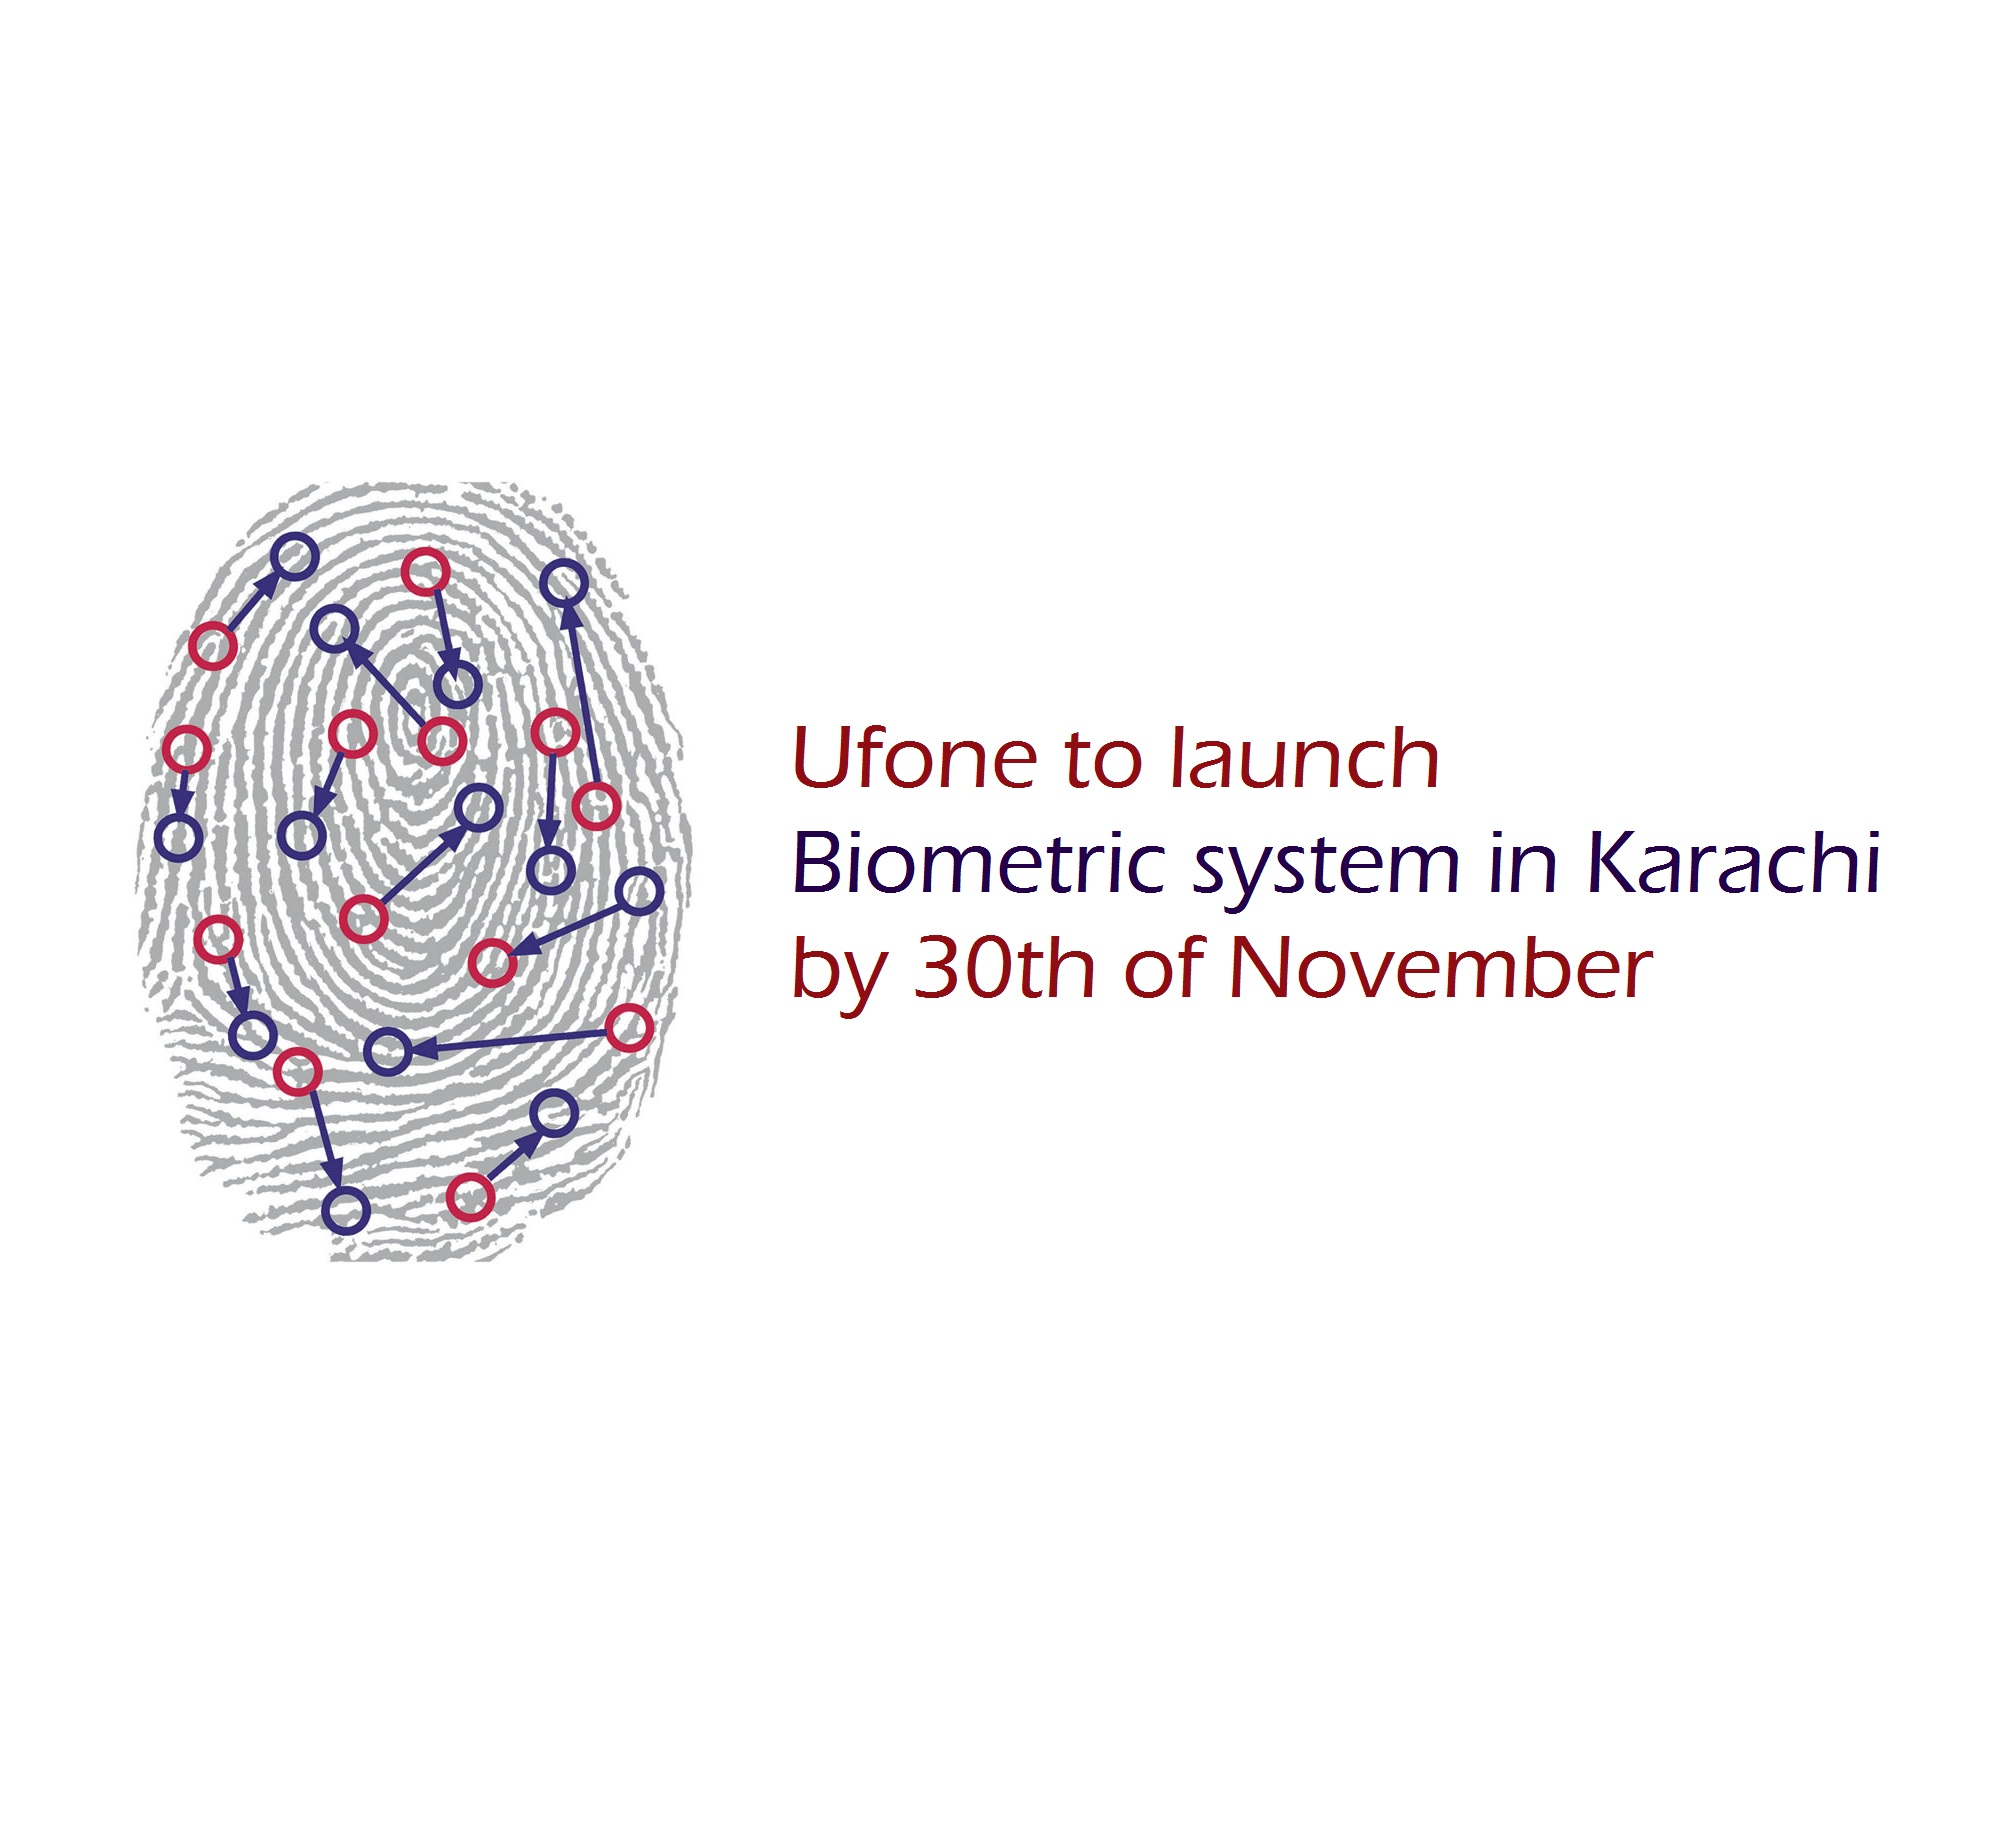 Ufone to launch biometric system in Karachi by 30th of November